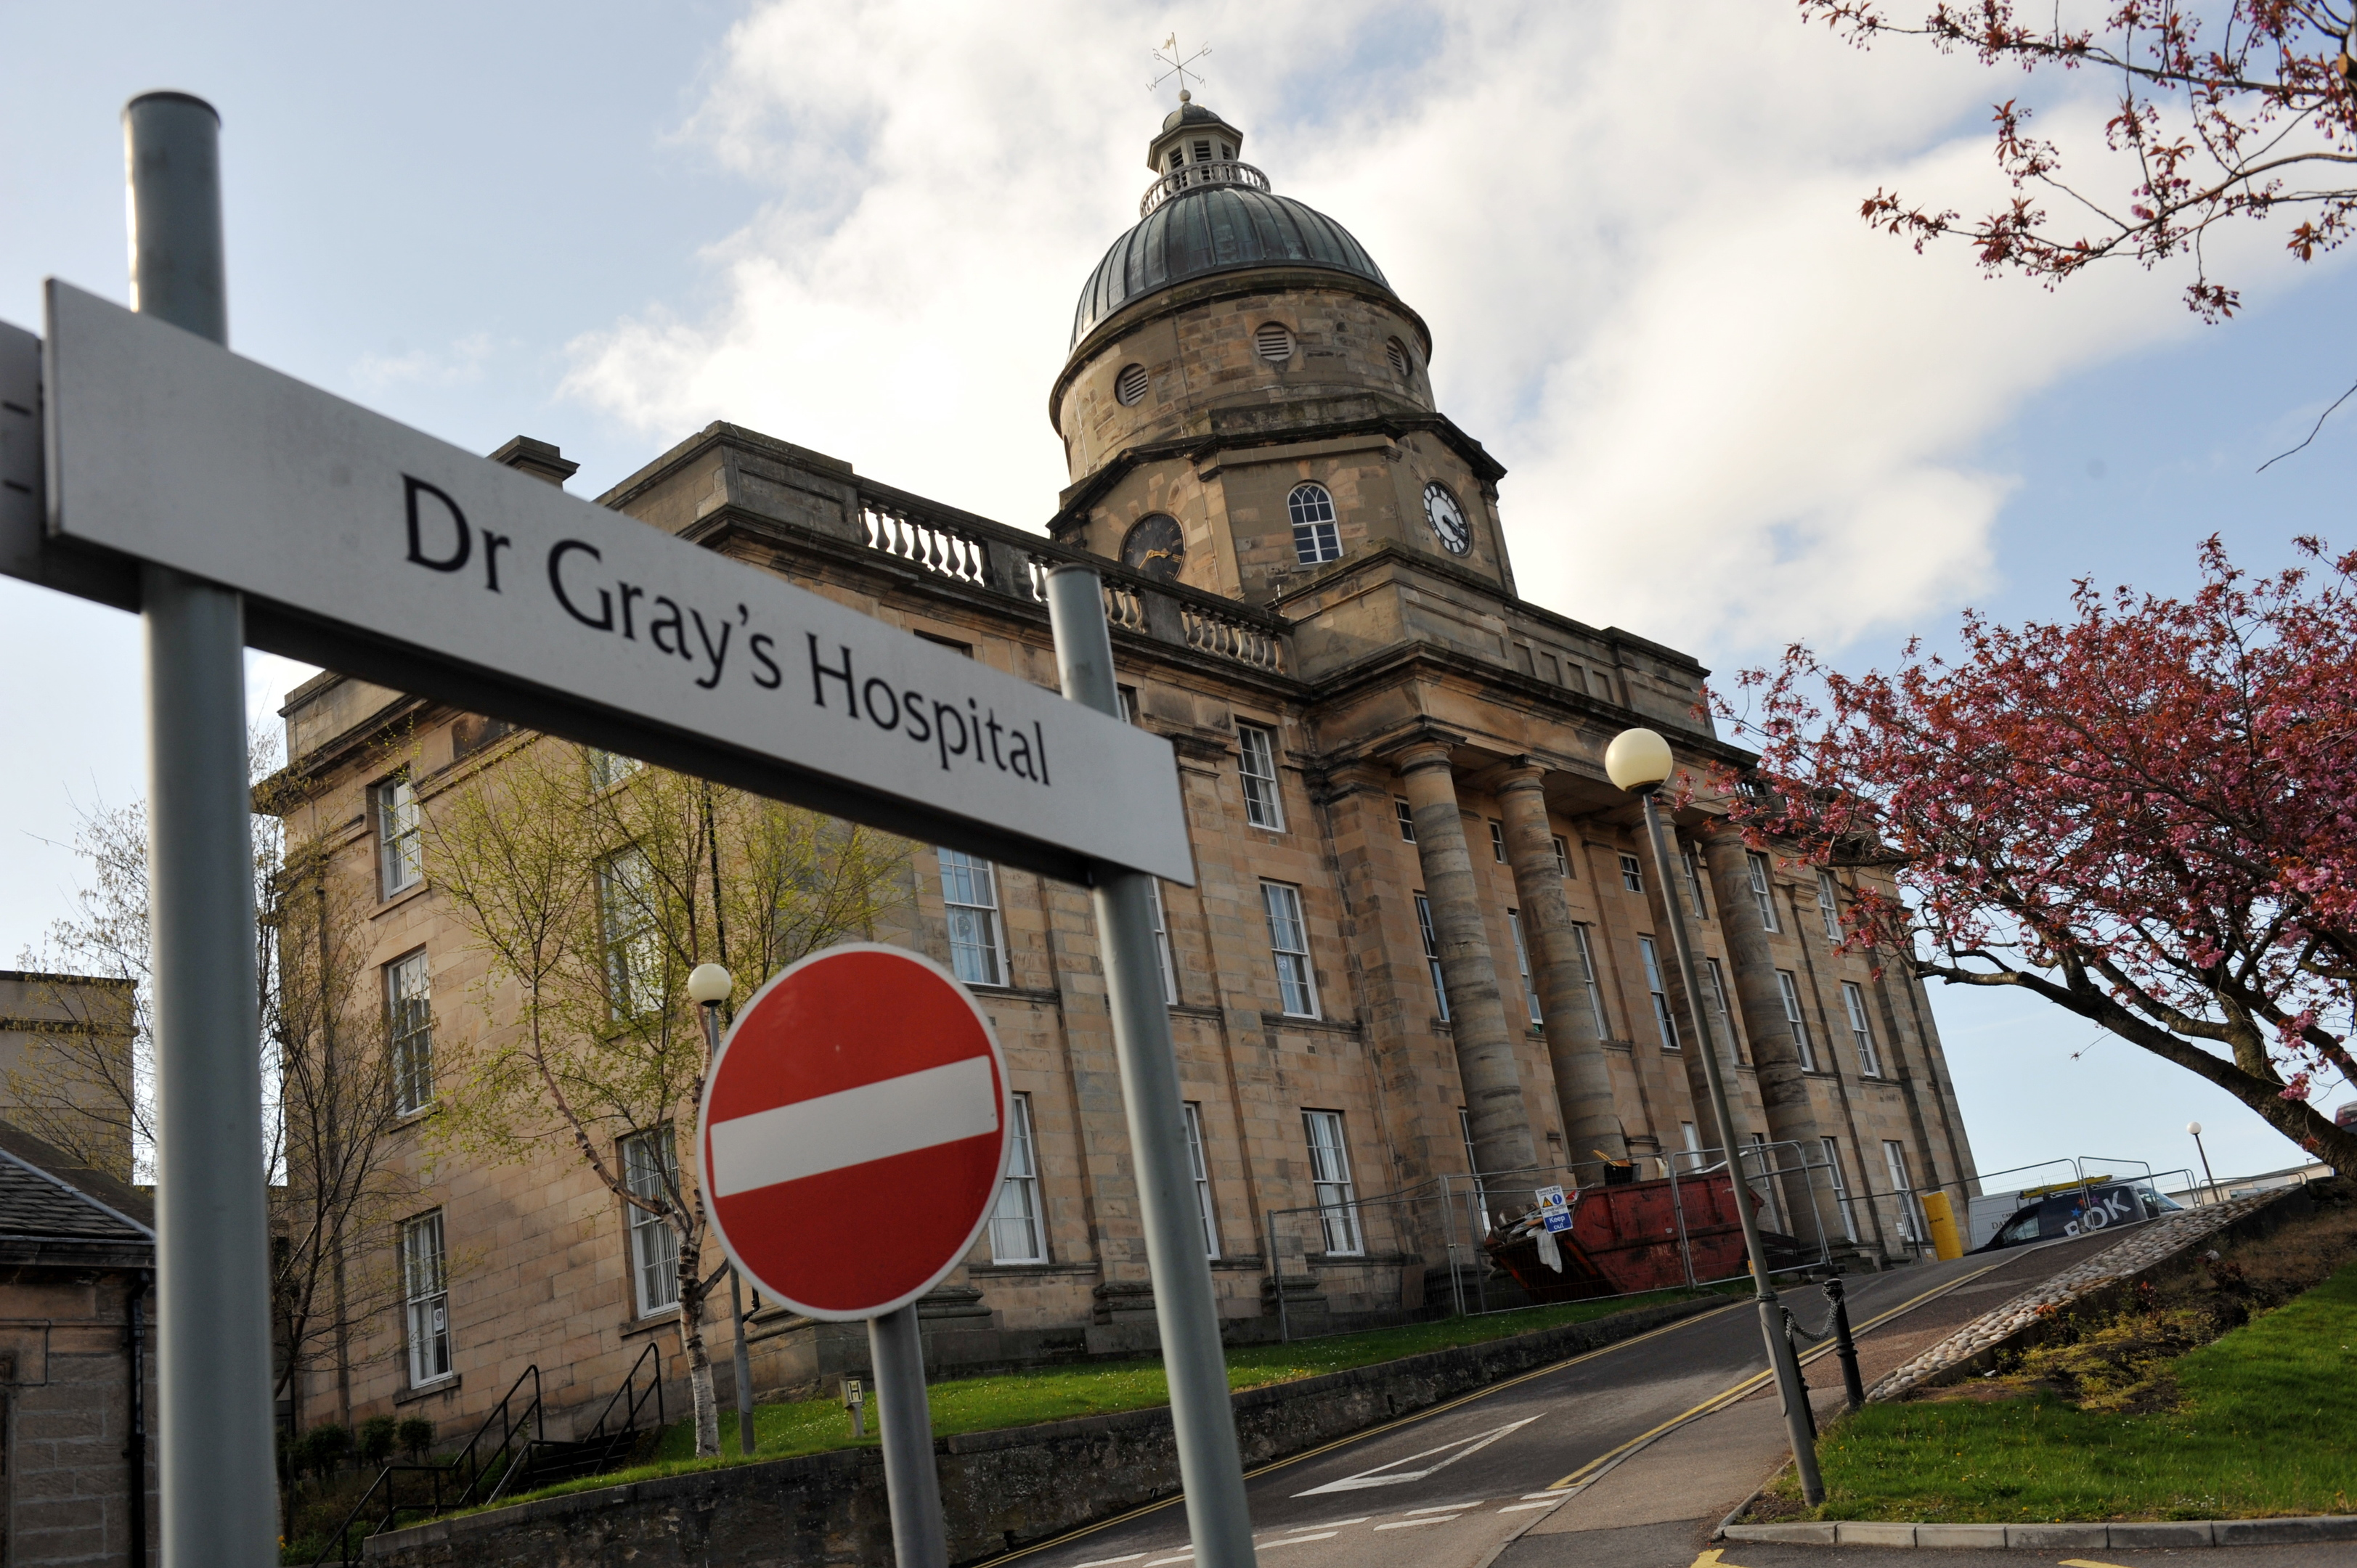 Dr Gray's Hospital in Elgin.